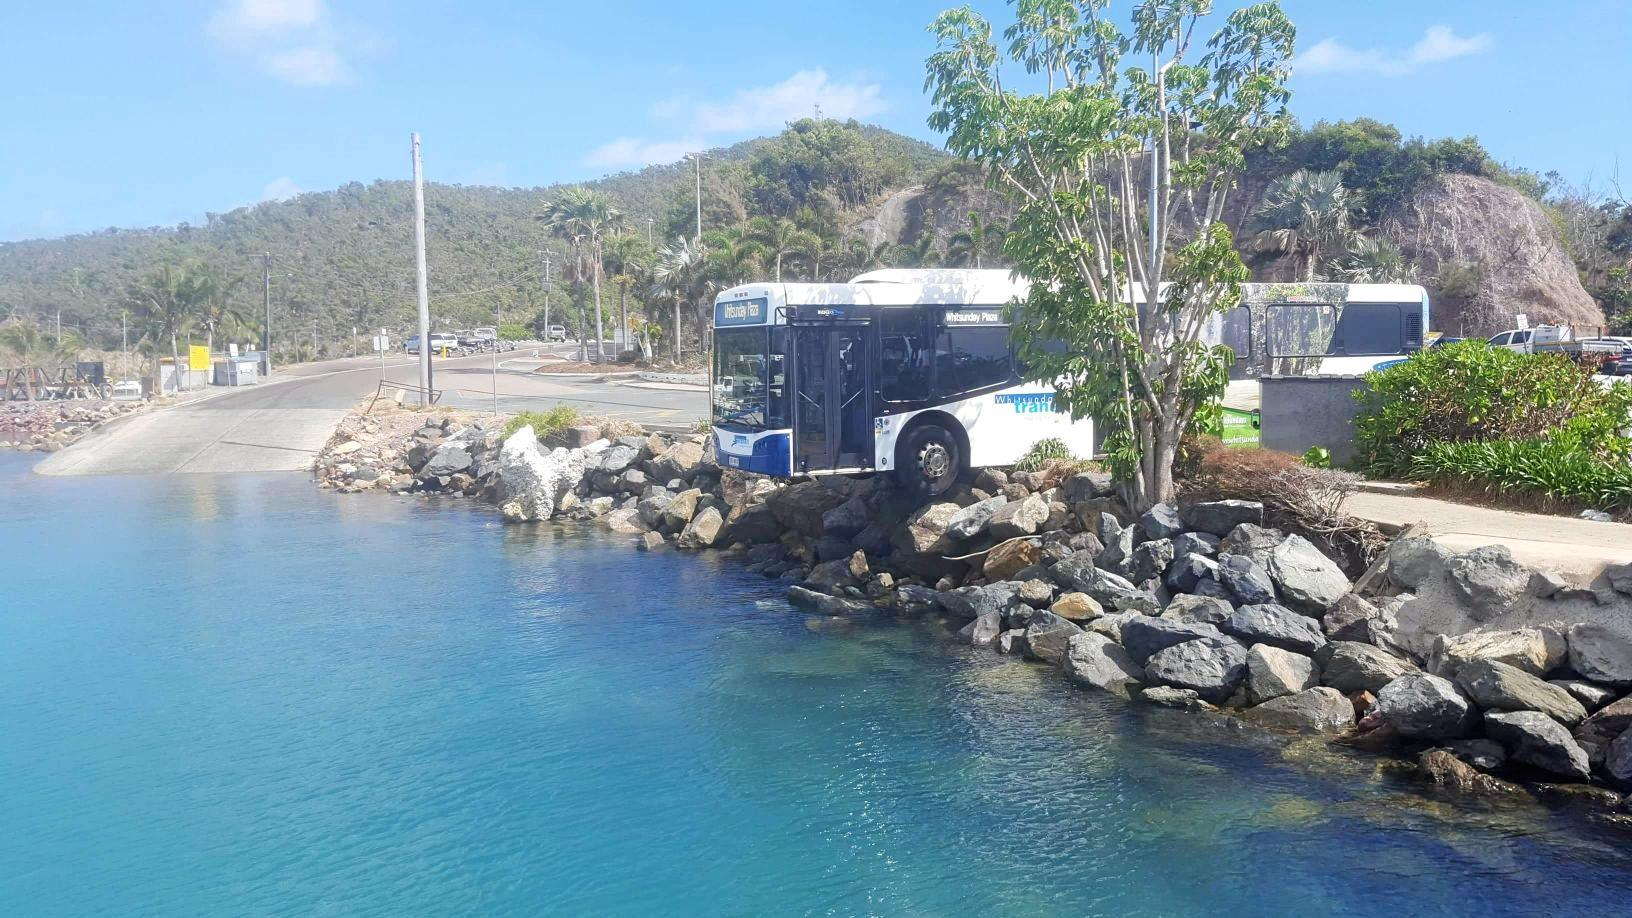 A bus rolled over the road edge at Shute Harbour in November.